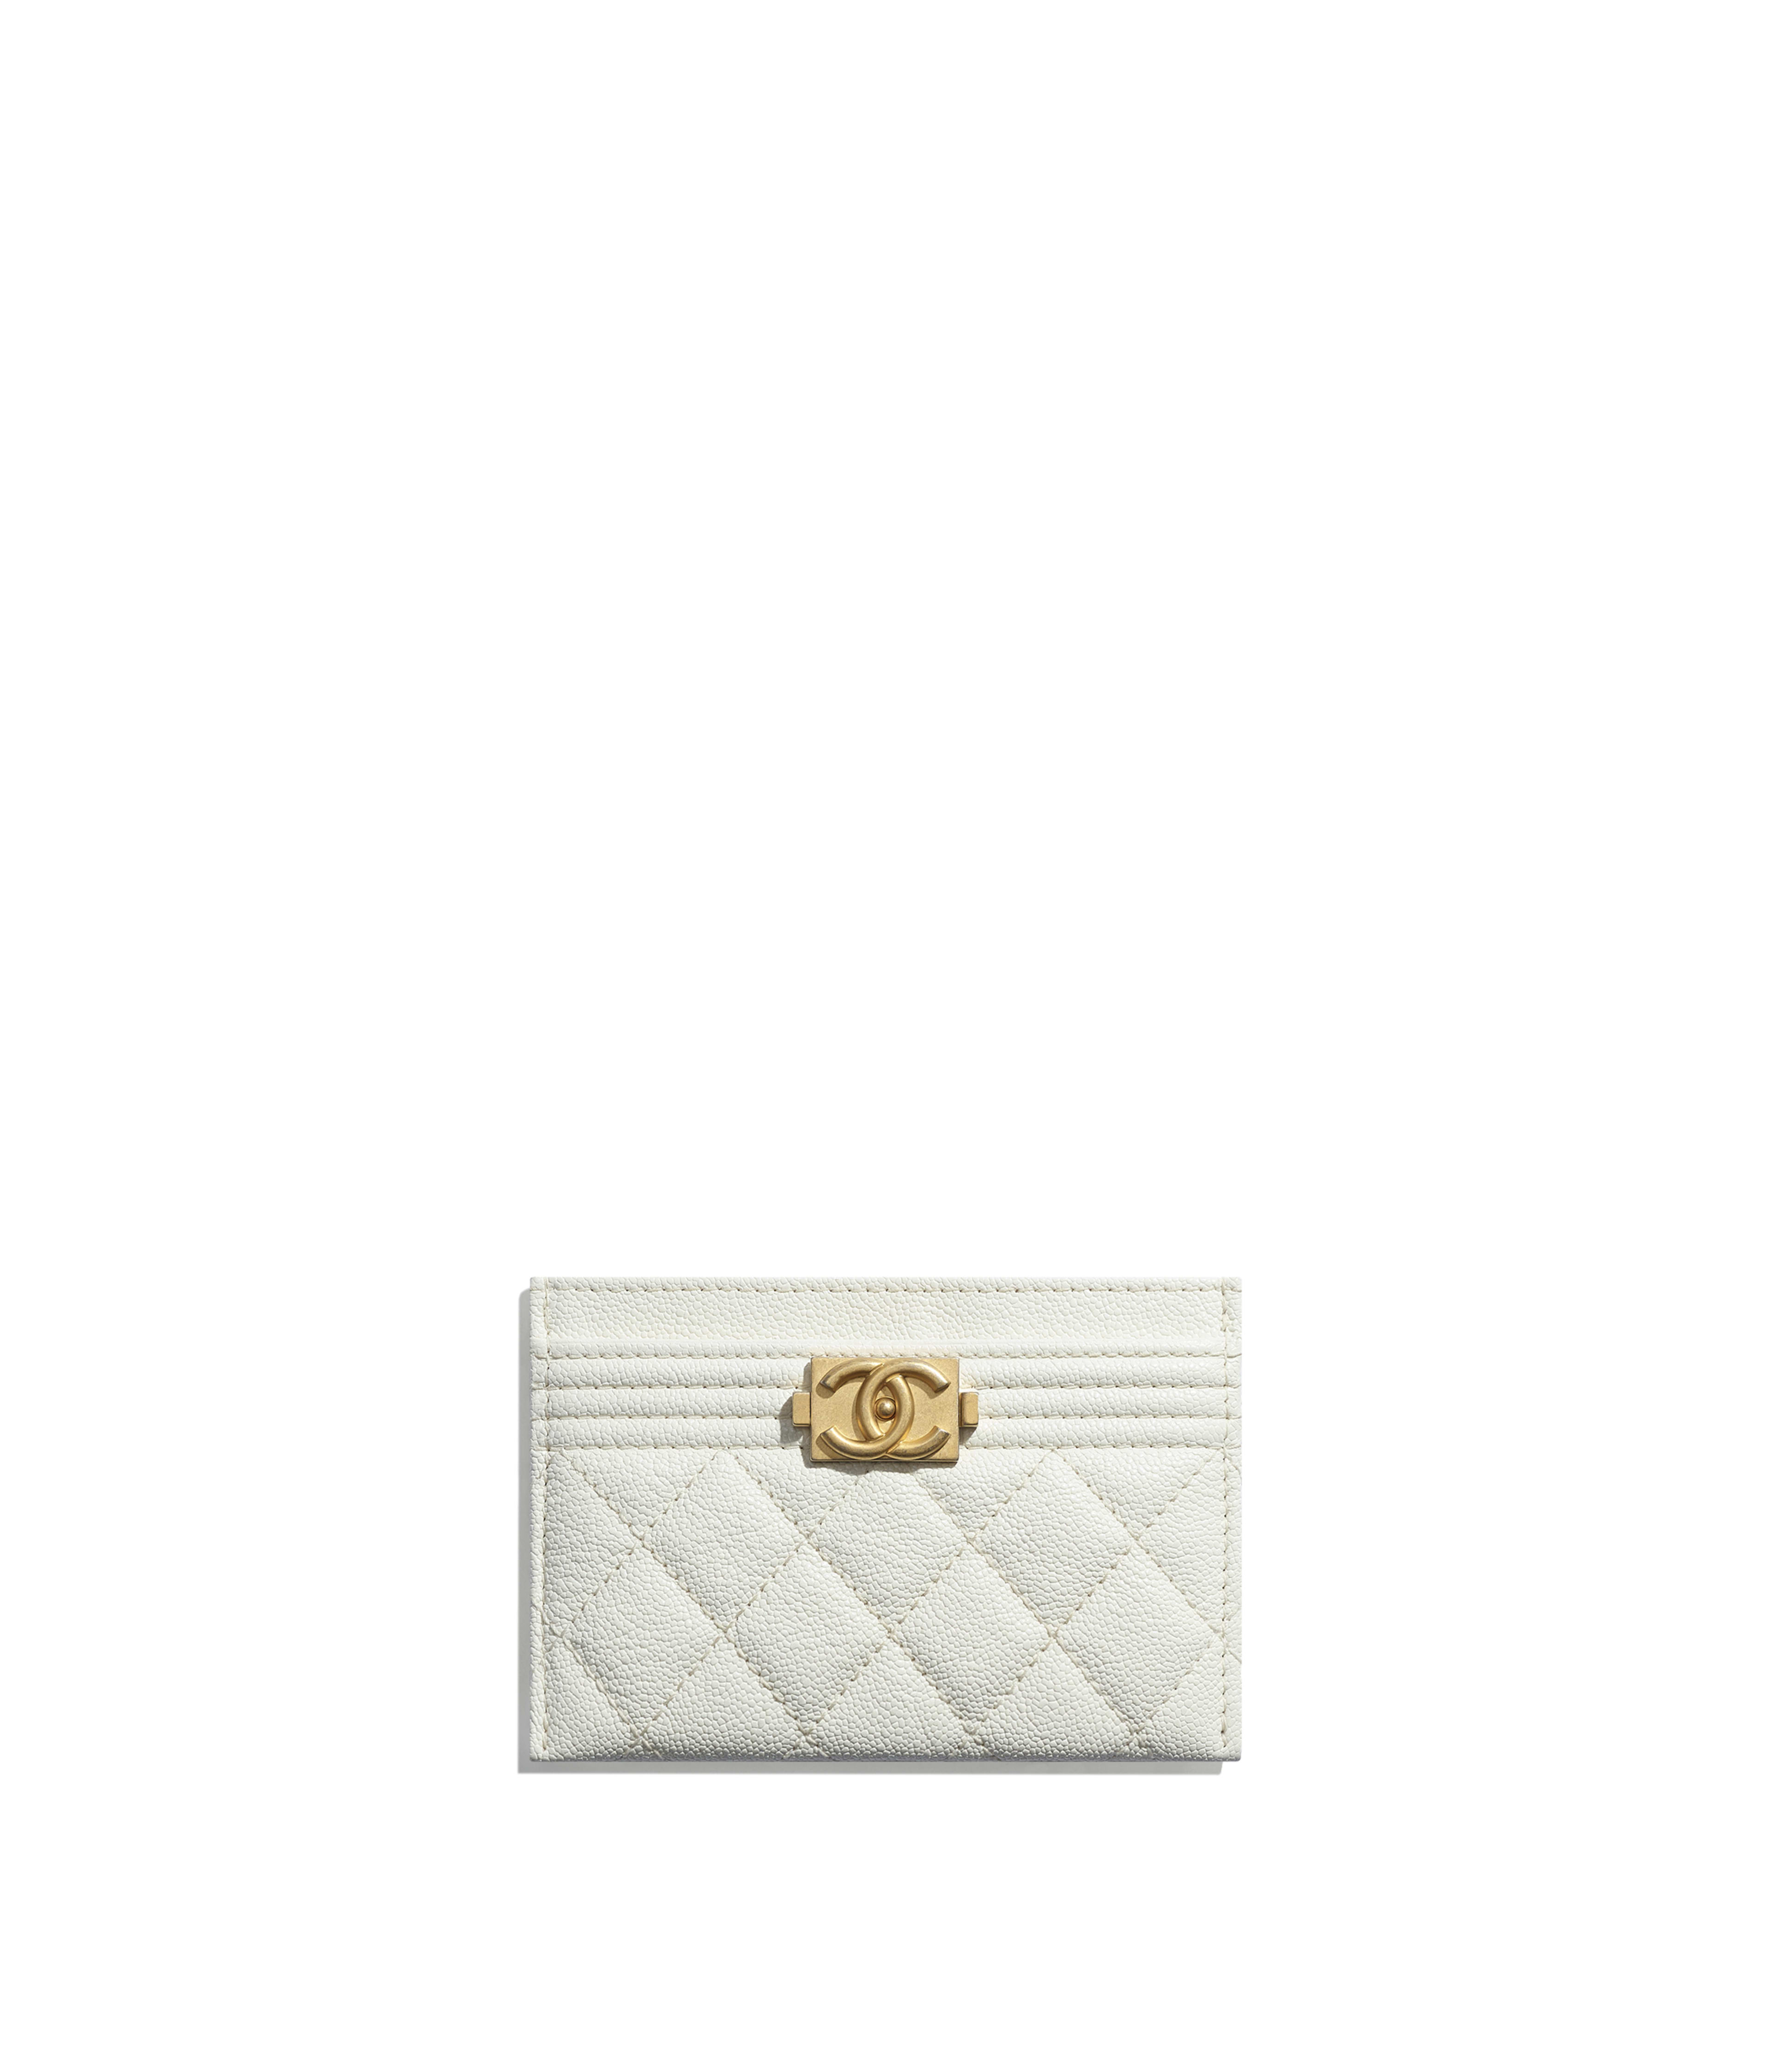 76c1f8d5f16e BOY CHANEL Card Holder Grained Calfskin & Gold-Tone Metal, White Ref.  A84431Y8362110601